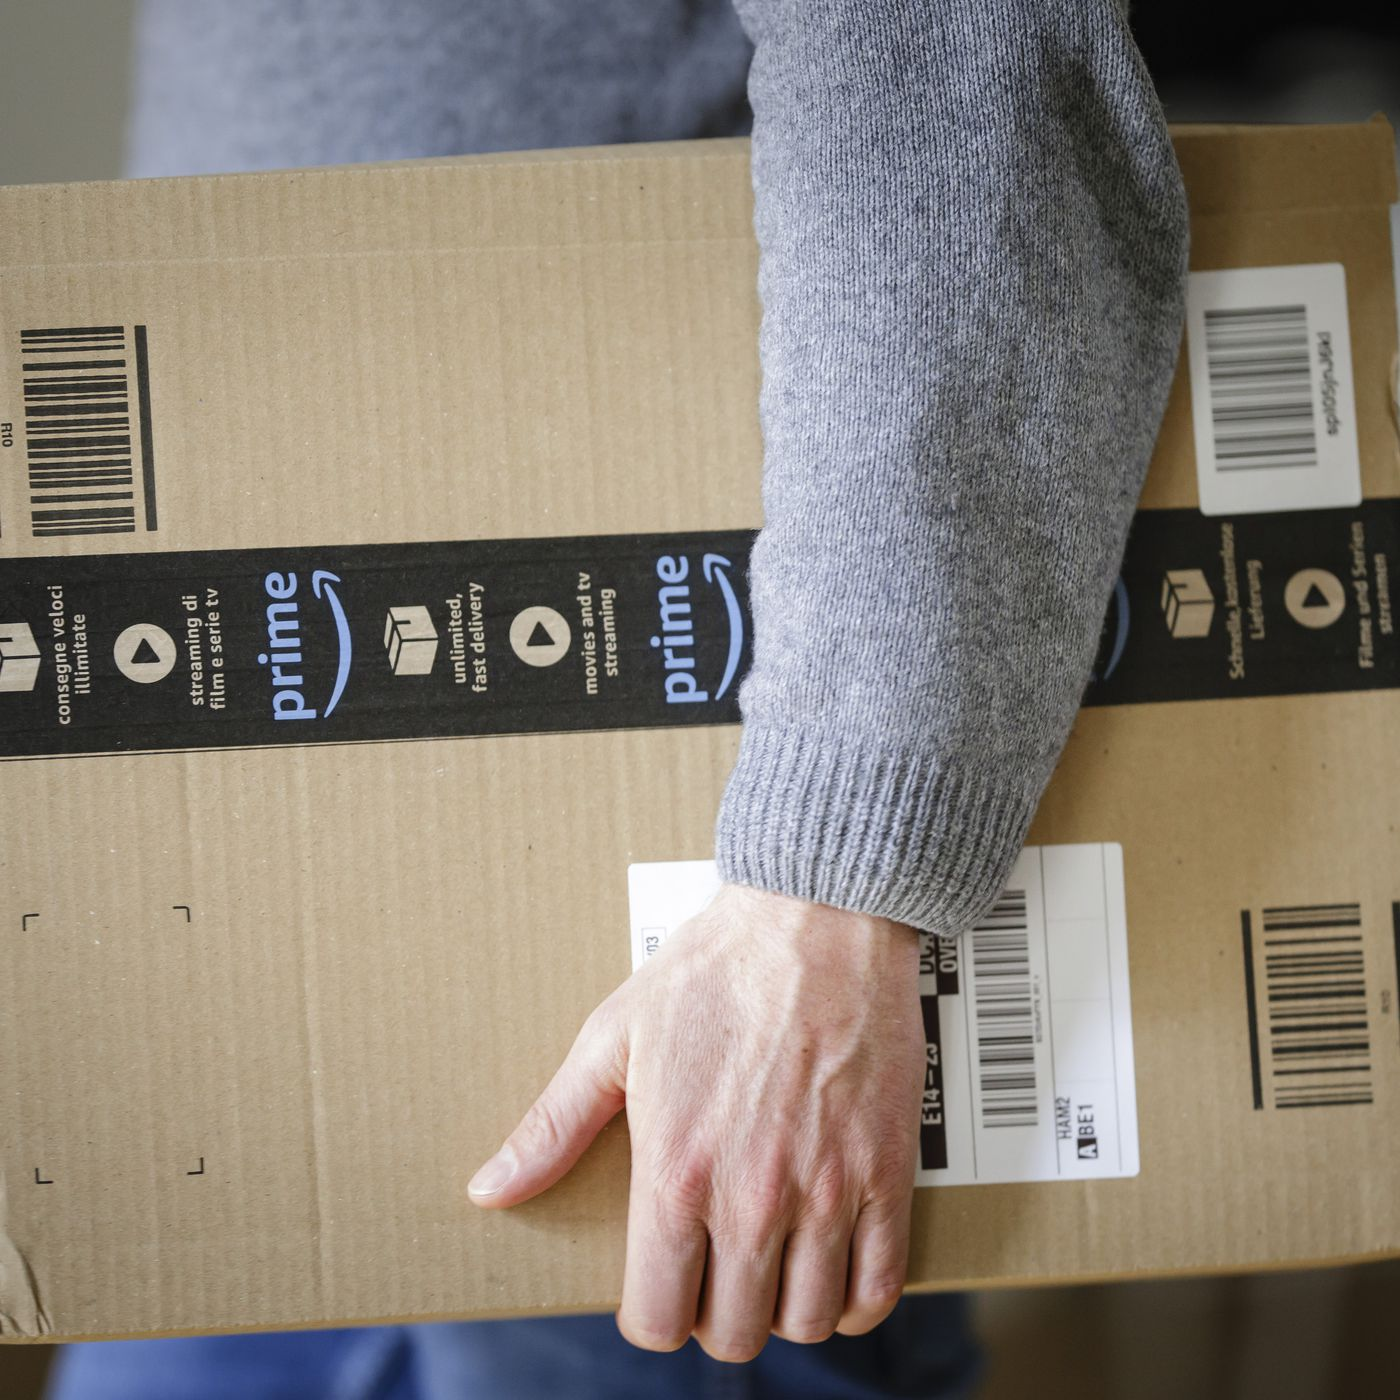 Amazon ousted thousands of merchants with no notice